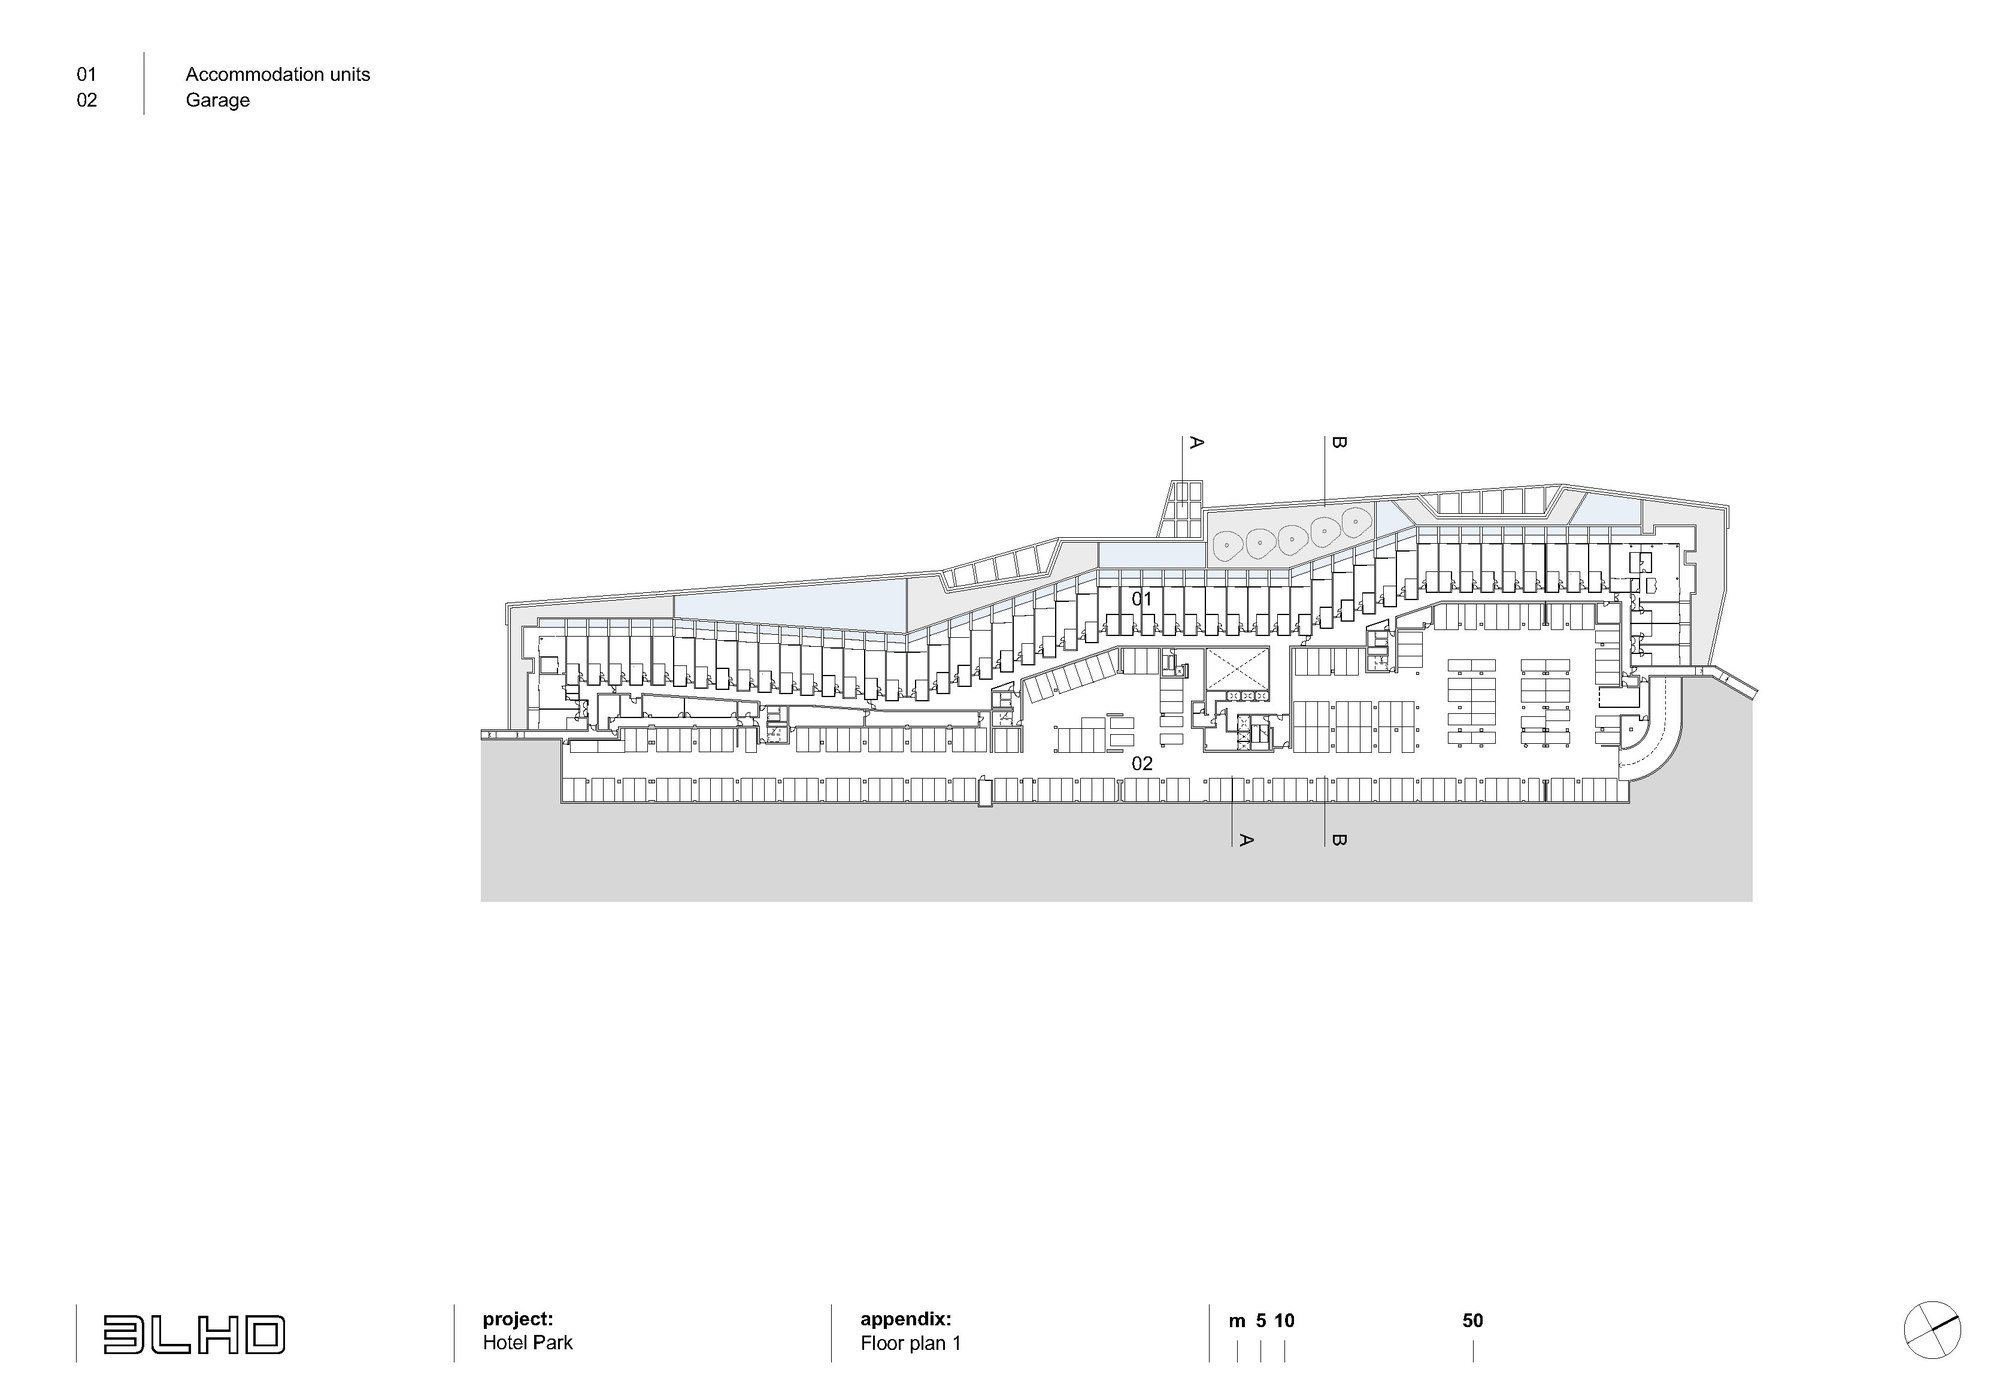 m2 _3LHD_202_GPHR_drawings_03_Floor_plan_1.jpg